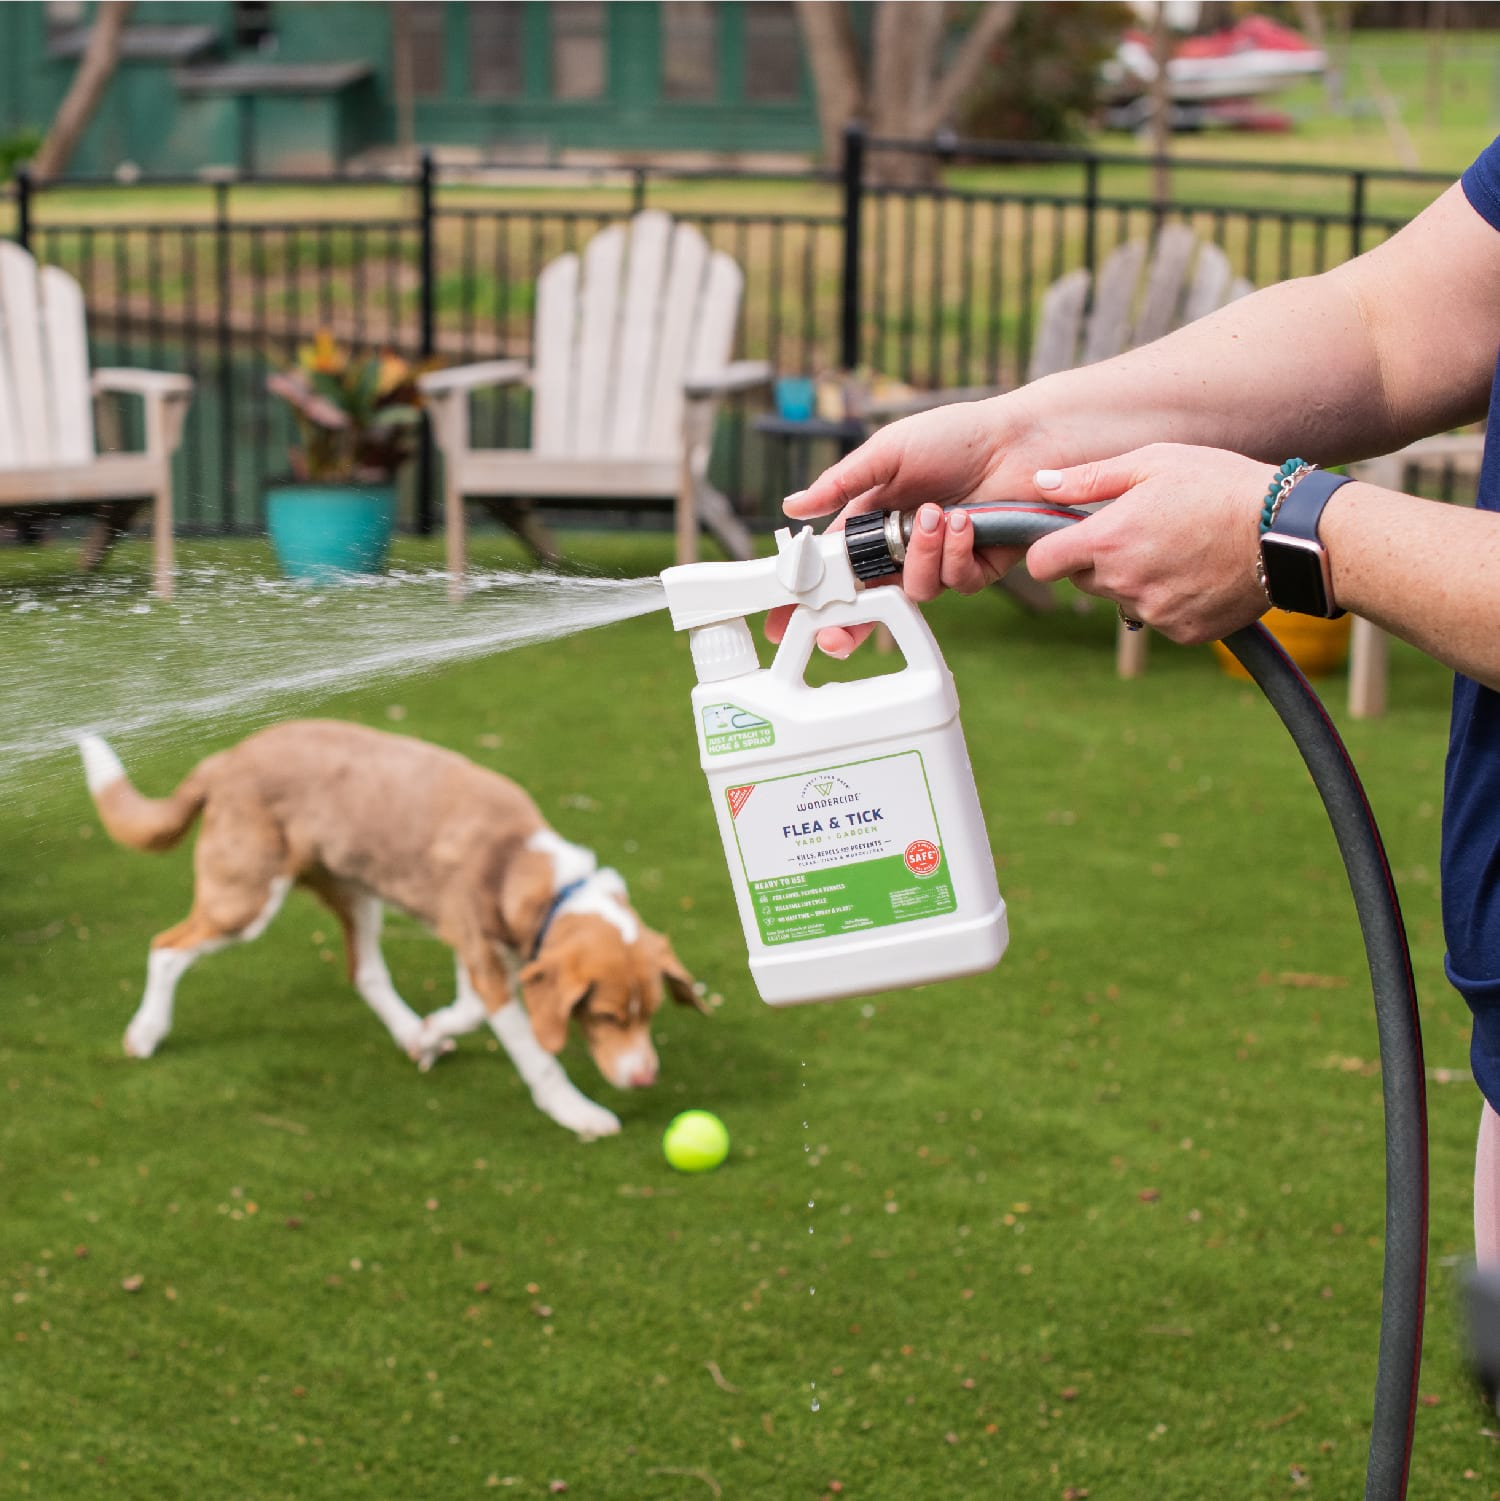 Ready-to-Use Flea & Tick Spray for Yard + Garden - In Use